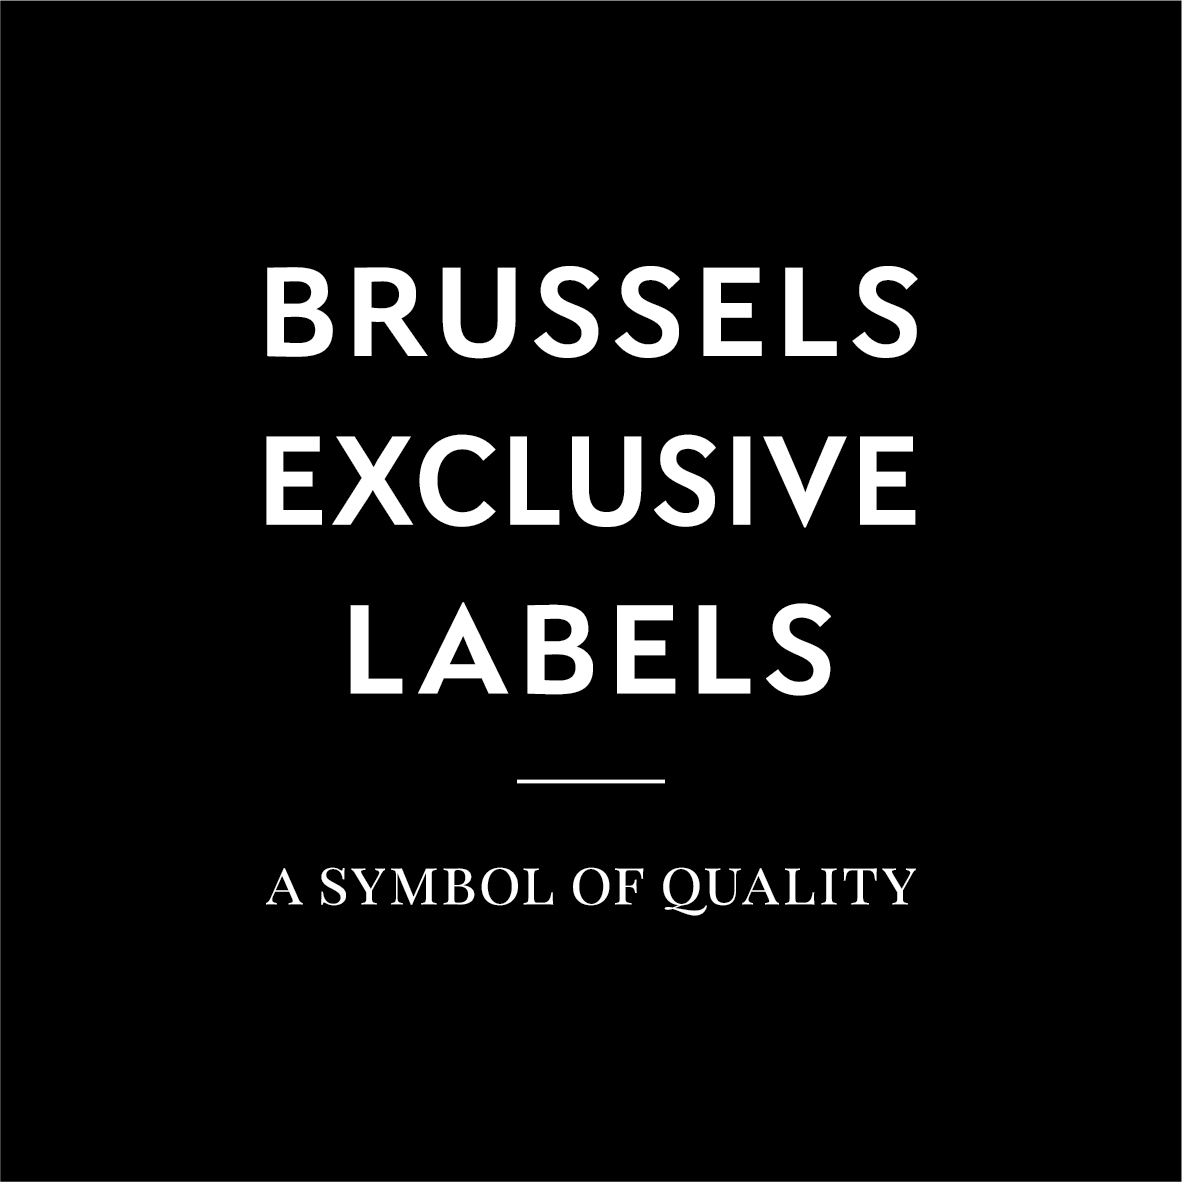 Brussels Exclusive Labels